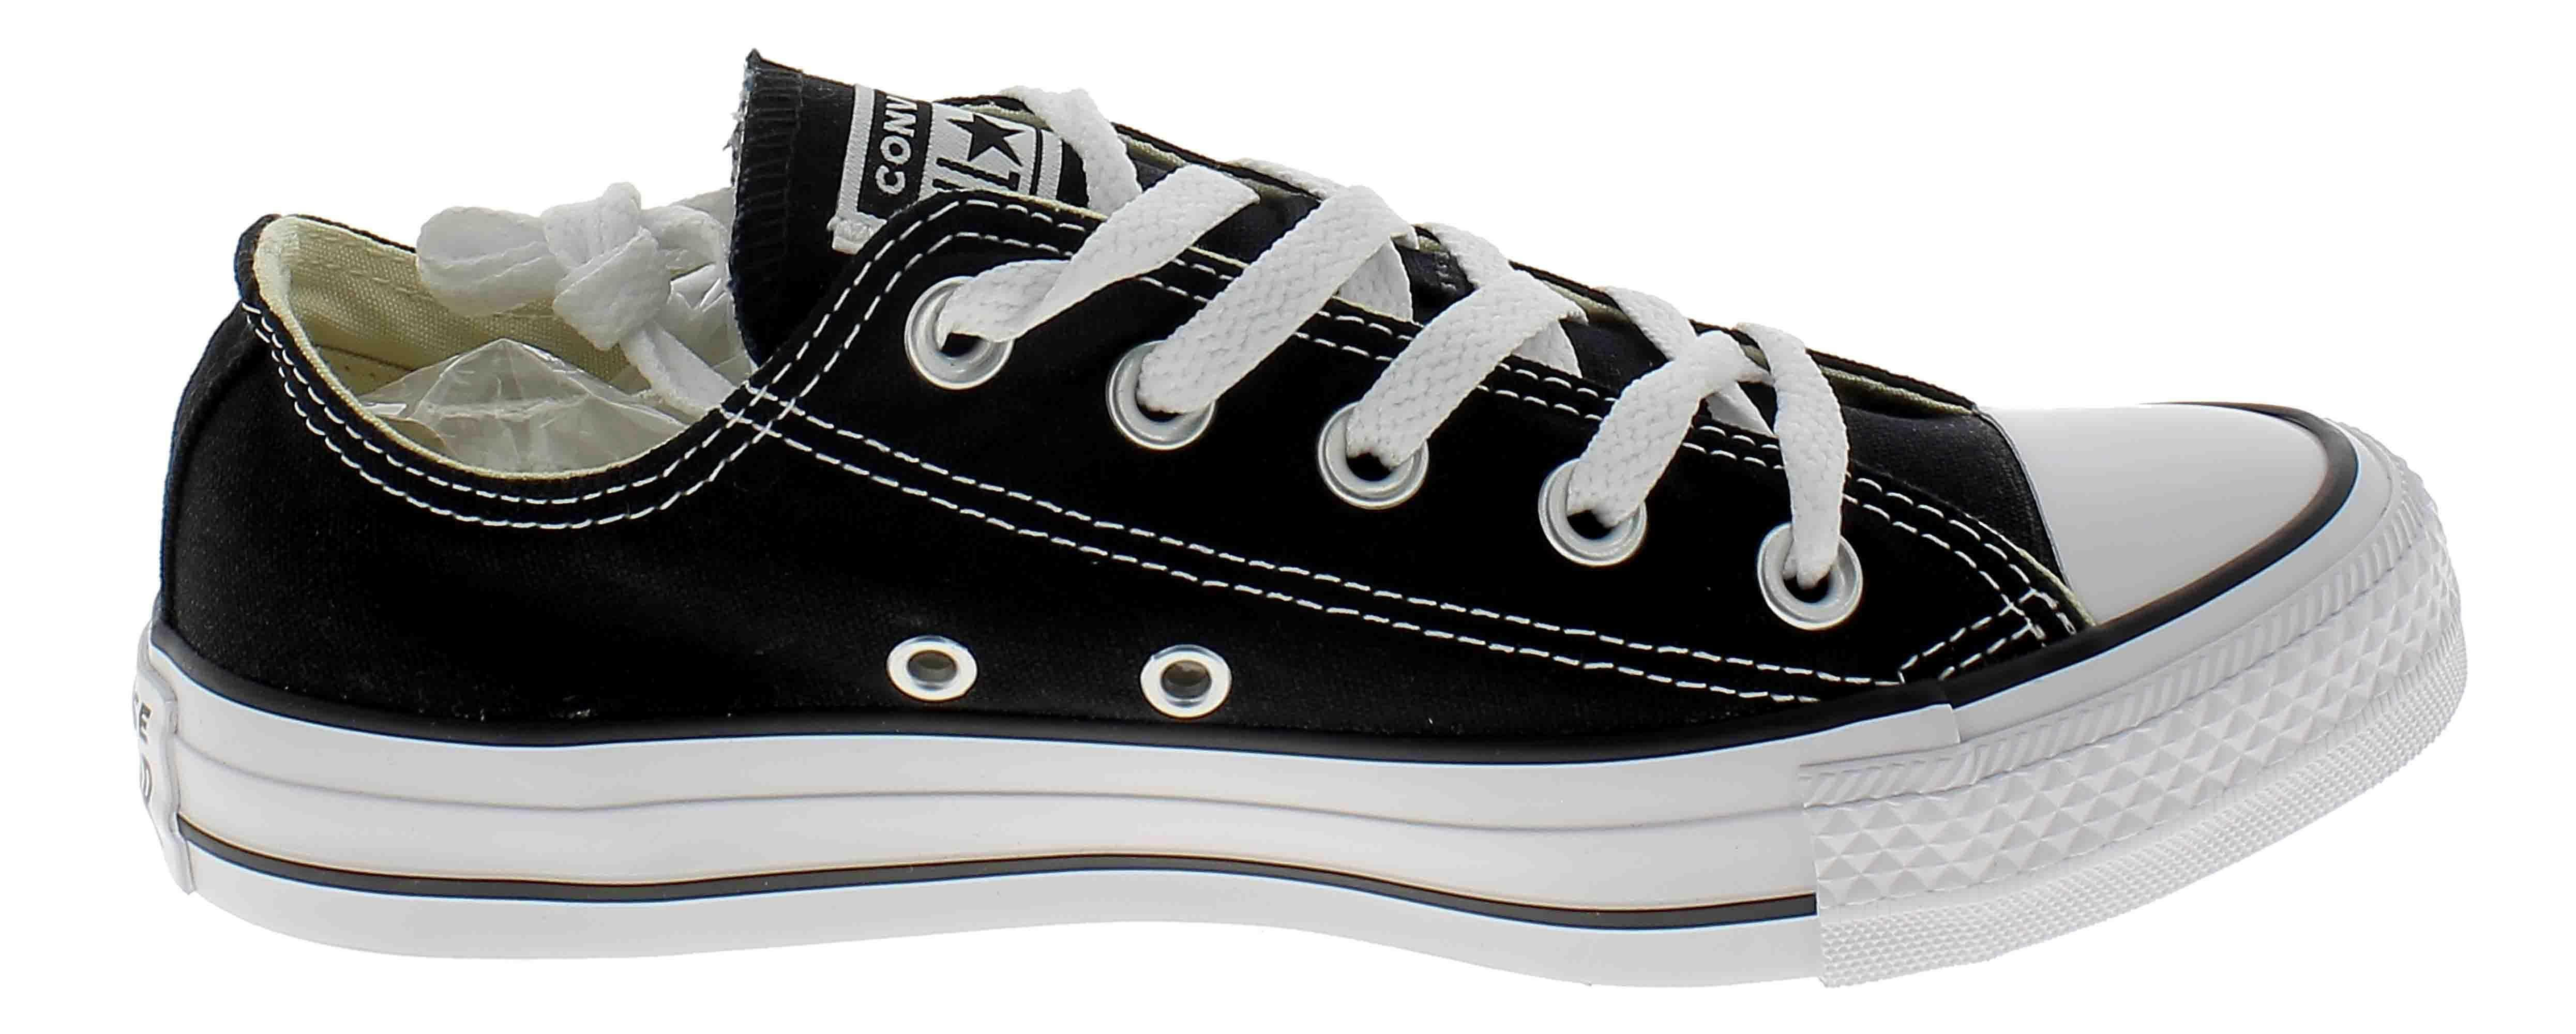 1fb6c8708882 CONVERSE ALL STAR OX OPTICAL SPORT SHOES LOW BLACK M9166